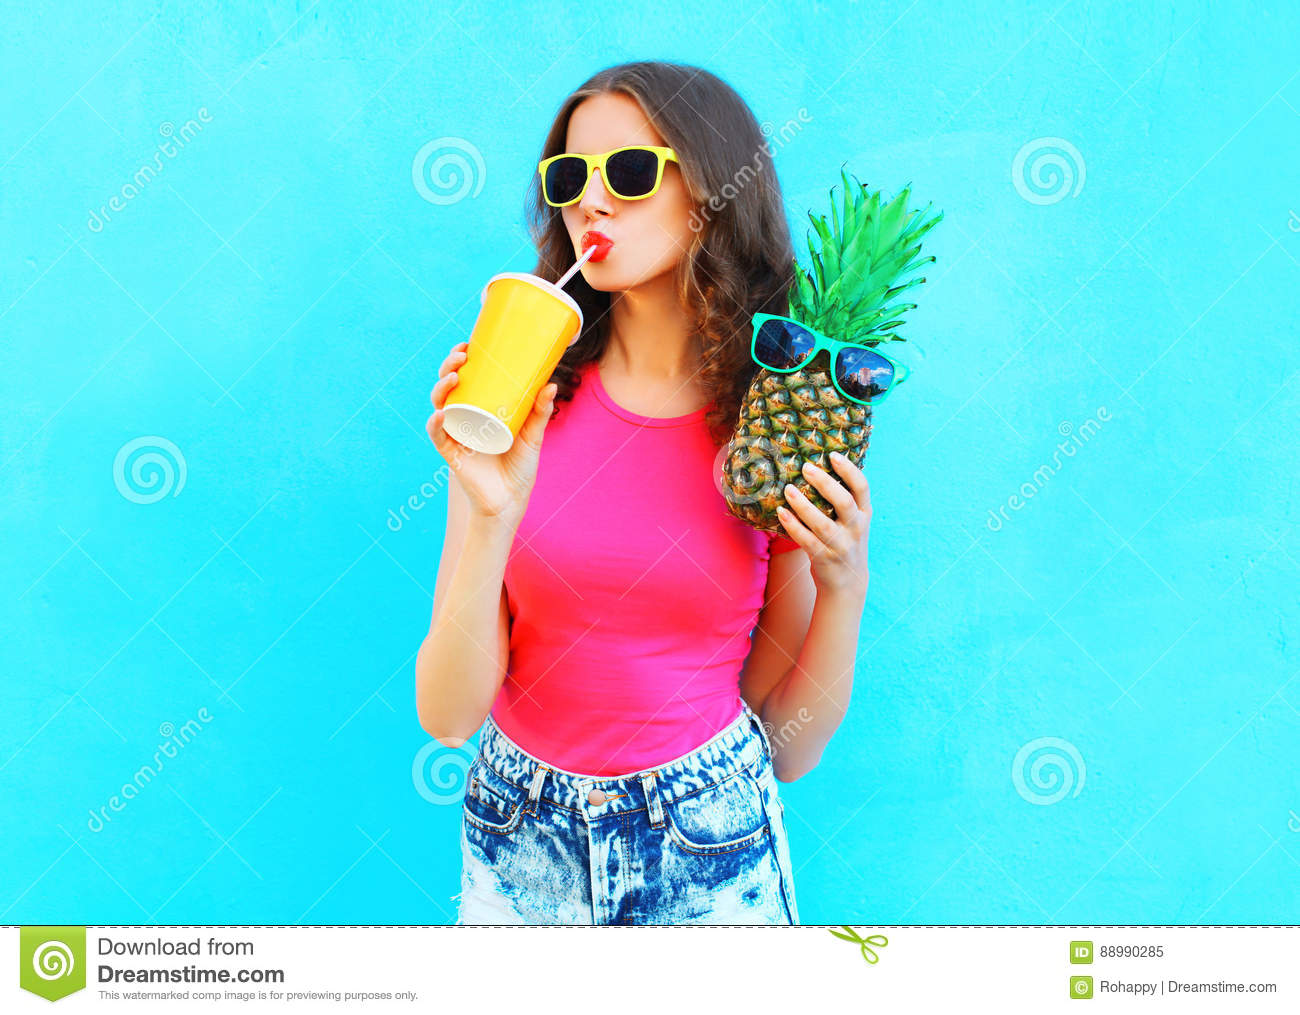 Fashion portrait pretty cool girl with pineapple drinking juice from cup over colorful